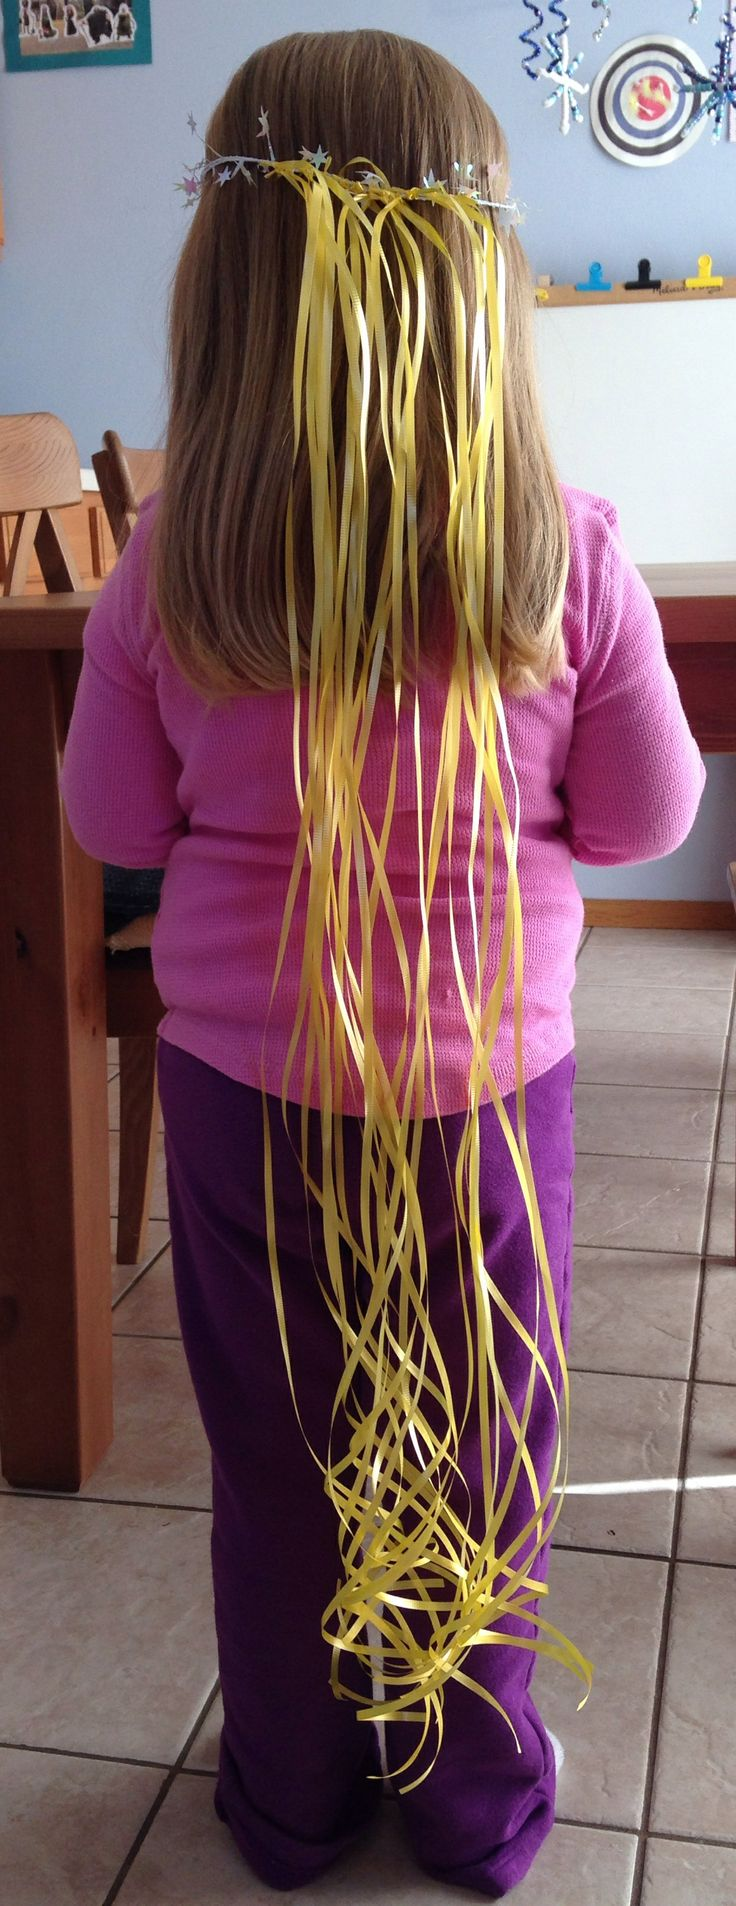 Rapunzel Hair Craft - measure the child's head with wire garland then tie on pieces of yellow curling ribbon - Preschool Activity